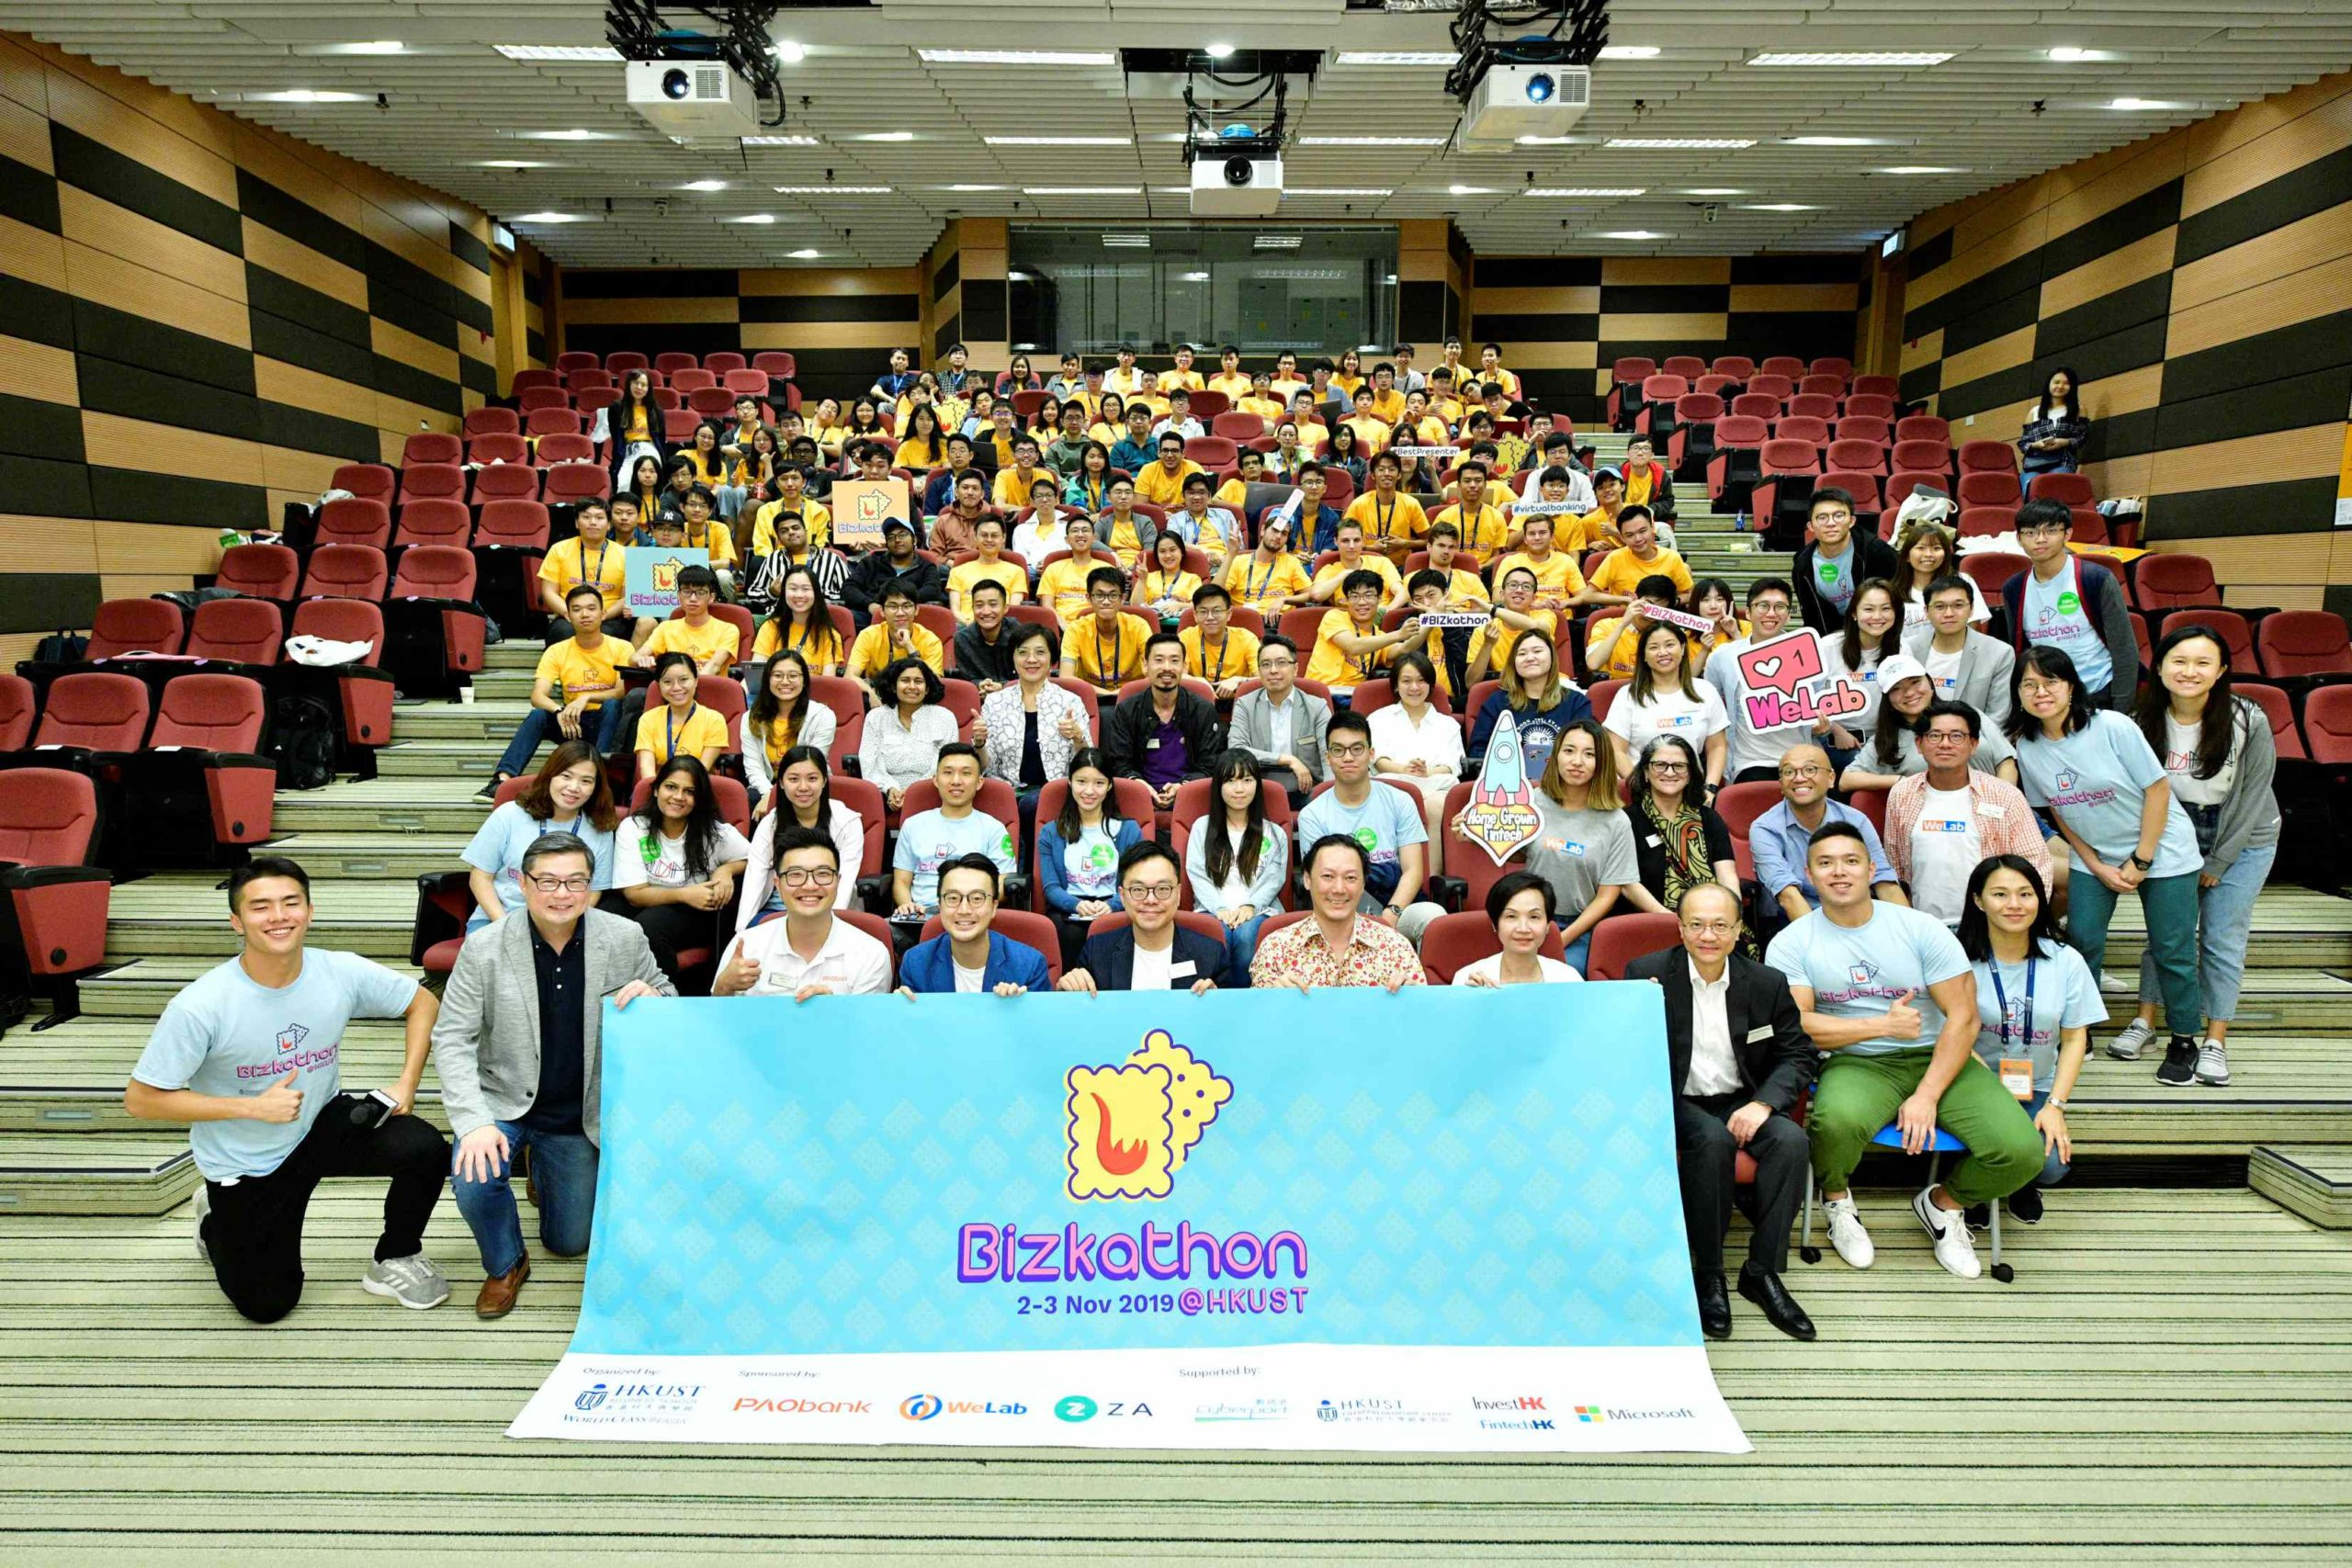 """THE TEAM """"IMPETUS"""" CONSISTS OF 5 BENG FINTECH YEAR 1 STUDENTS WON THE 2nd RUNNER-UP AWARD IN THE BIZKATHON@HKUST ON NOV 2-3, 2019"""